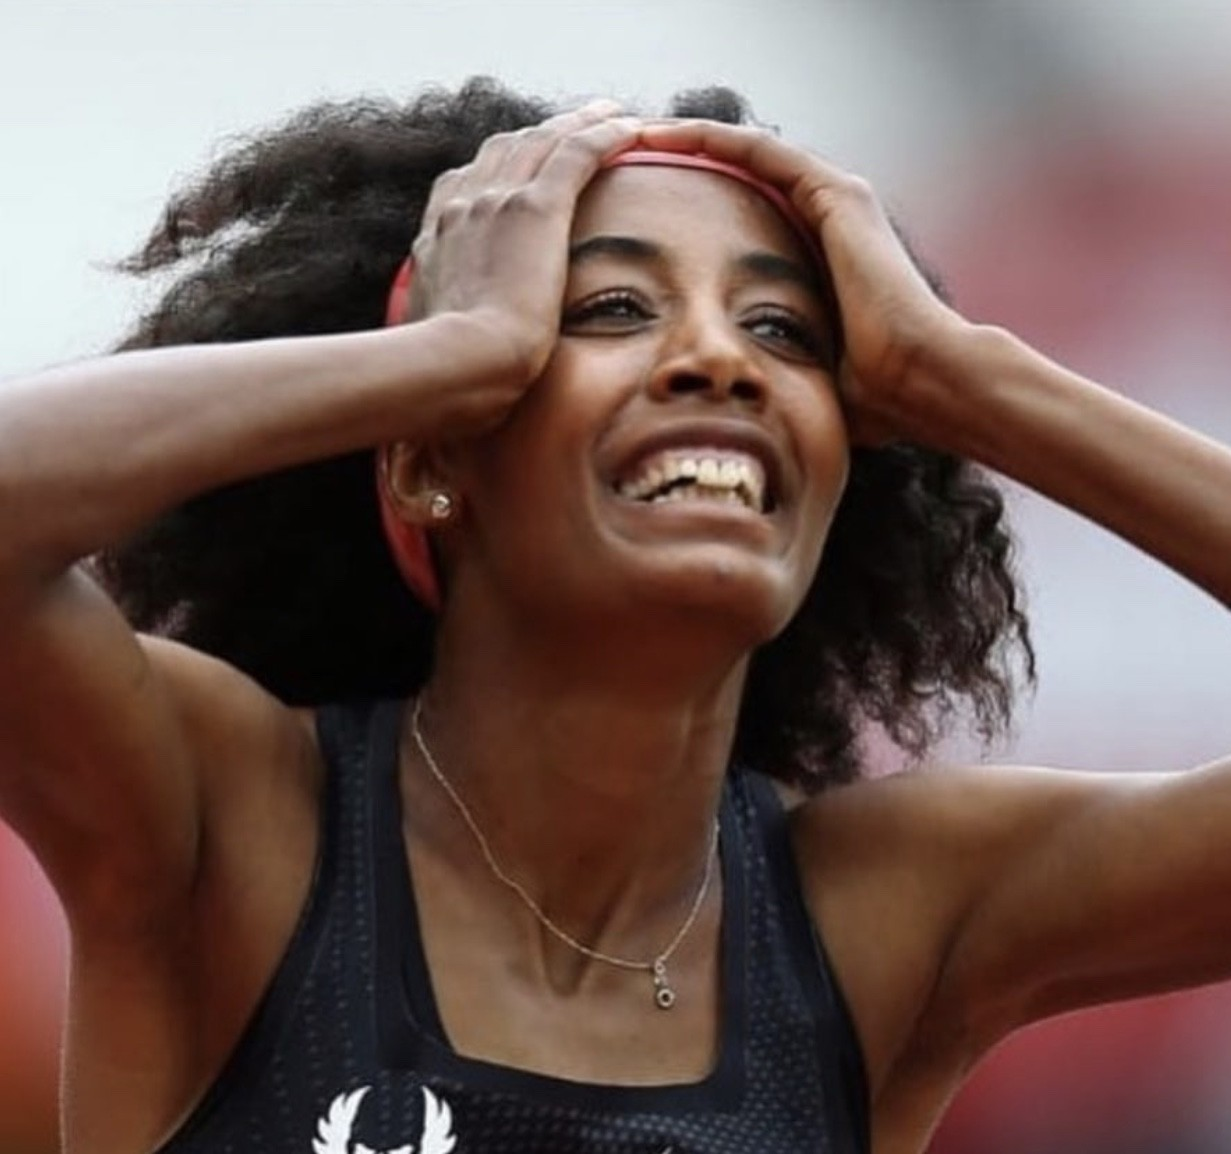 Sifan Hassan breaks women world record for the mile clocking 4:12.33 in Monaco